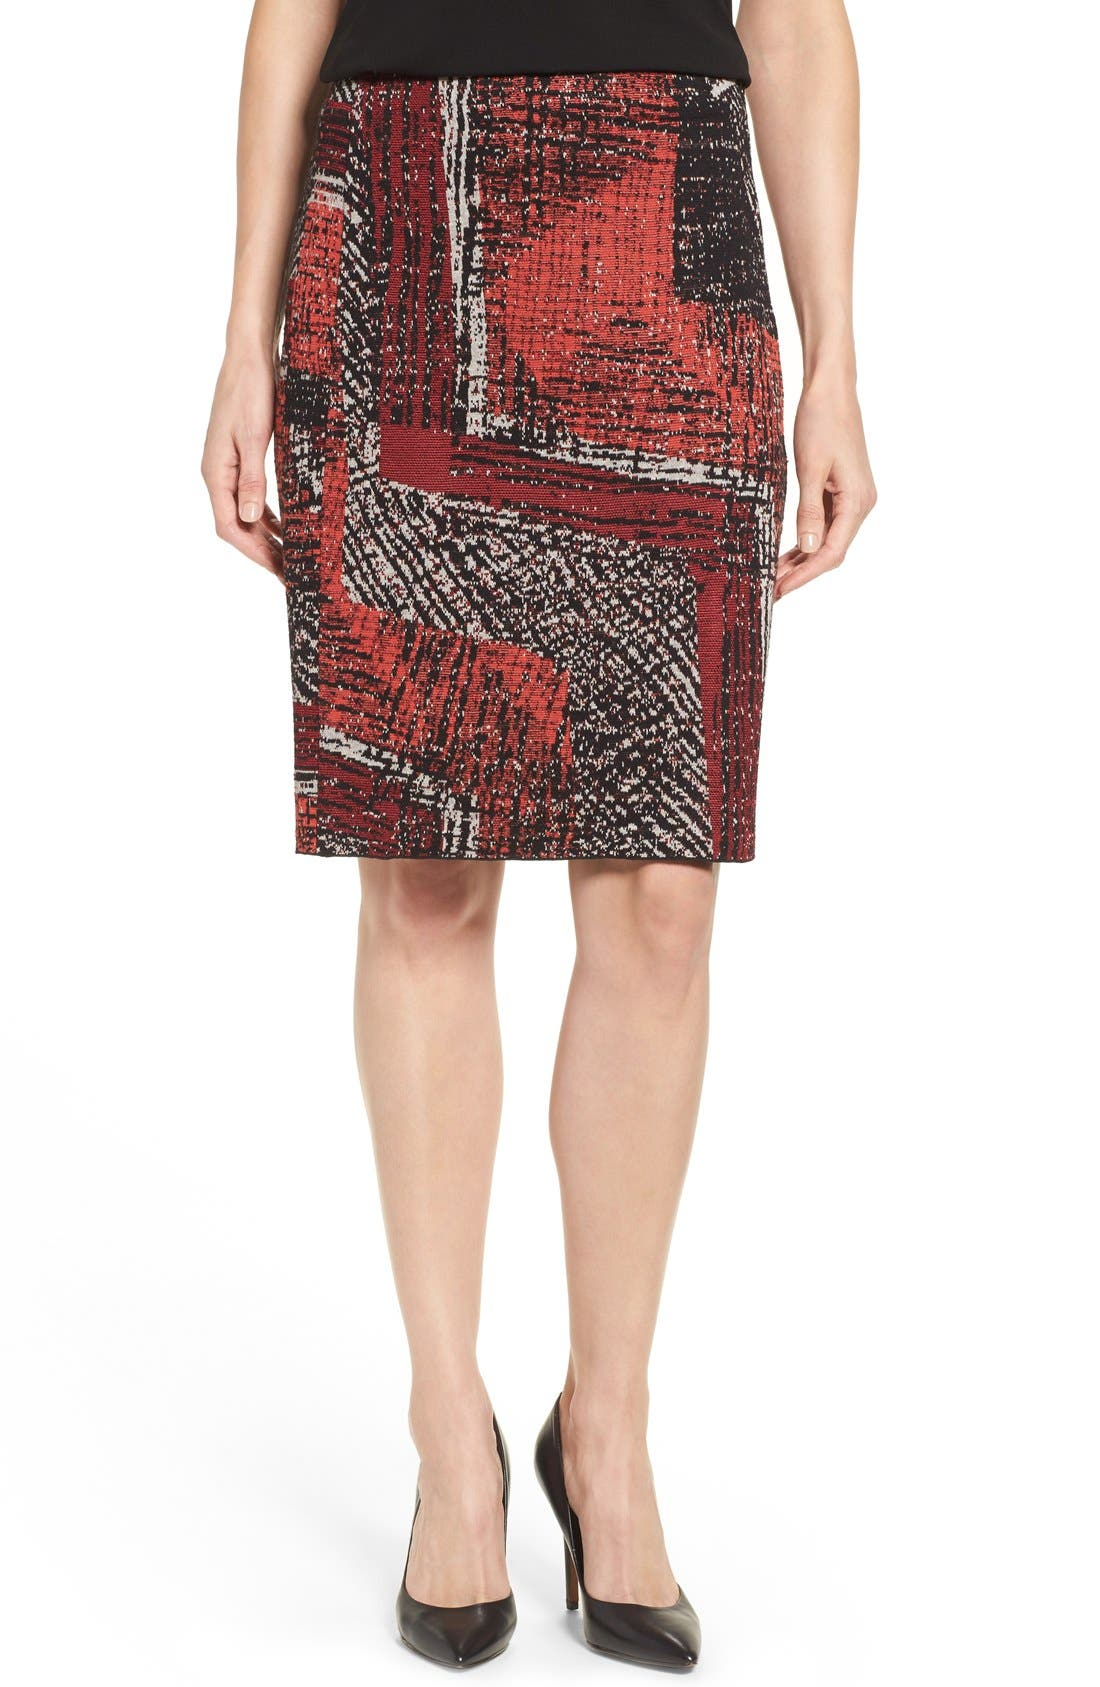 Alternate Image 1 Selected - NIC+ZOE 'Making Marks' Print Knit Pencil Skirt (Regular & Petite)